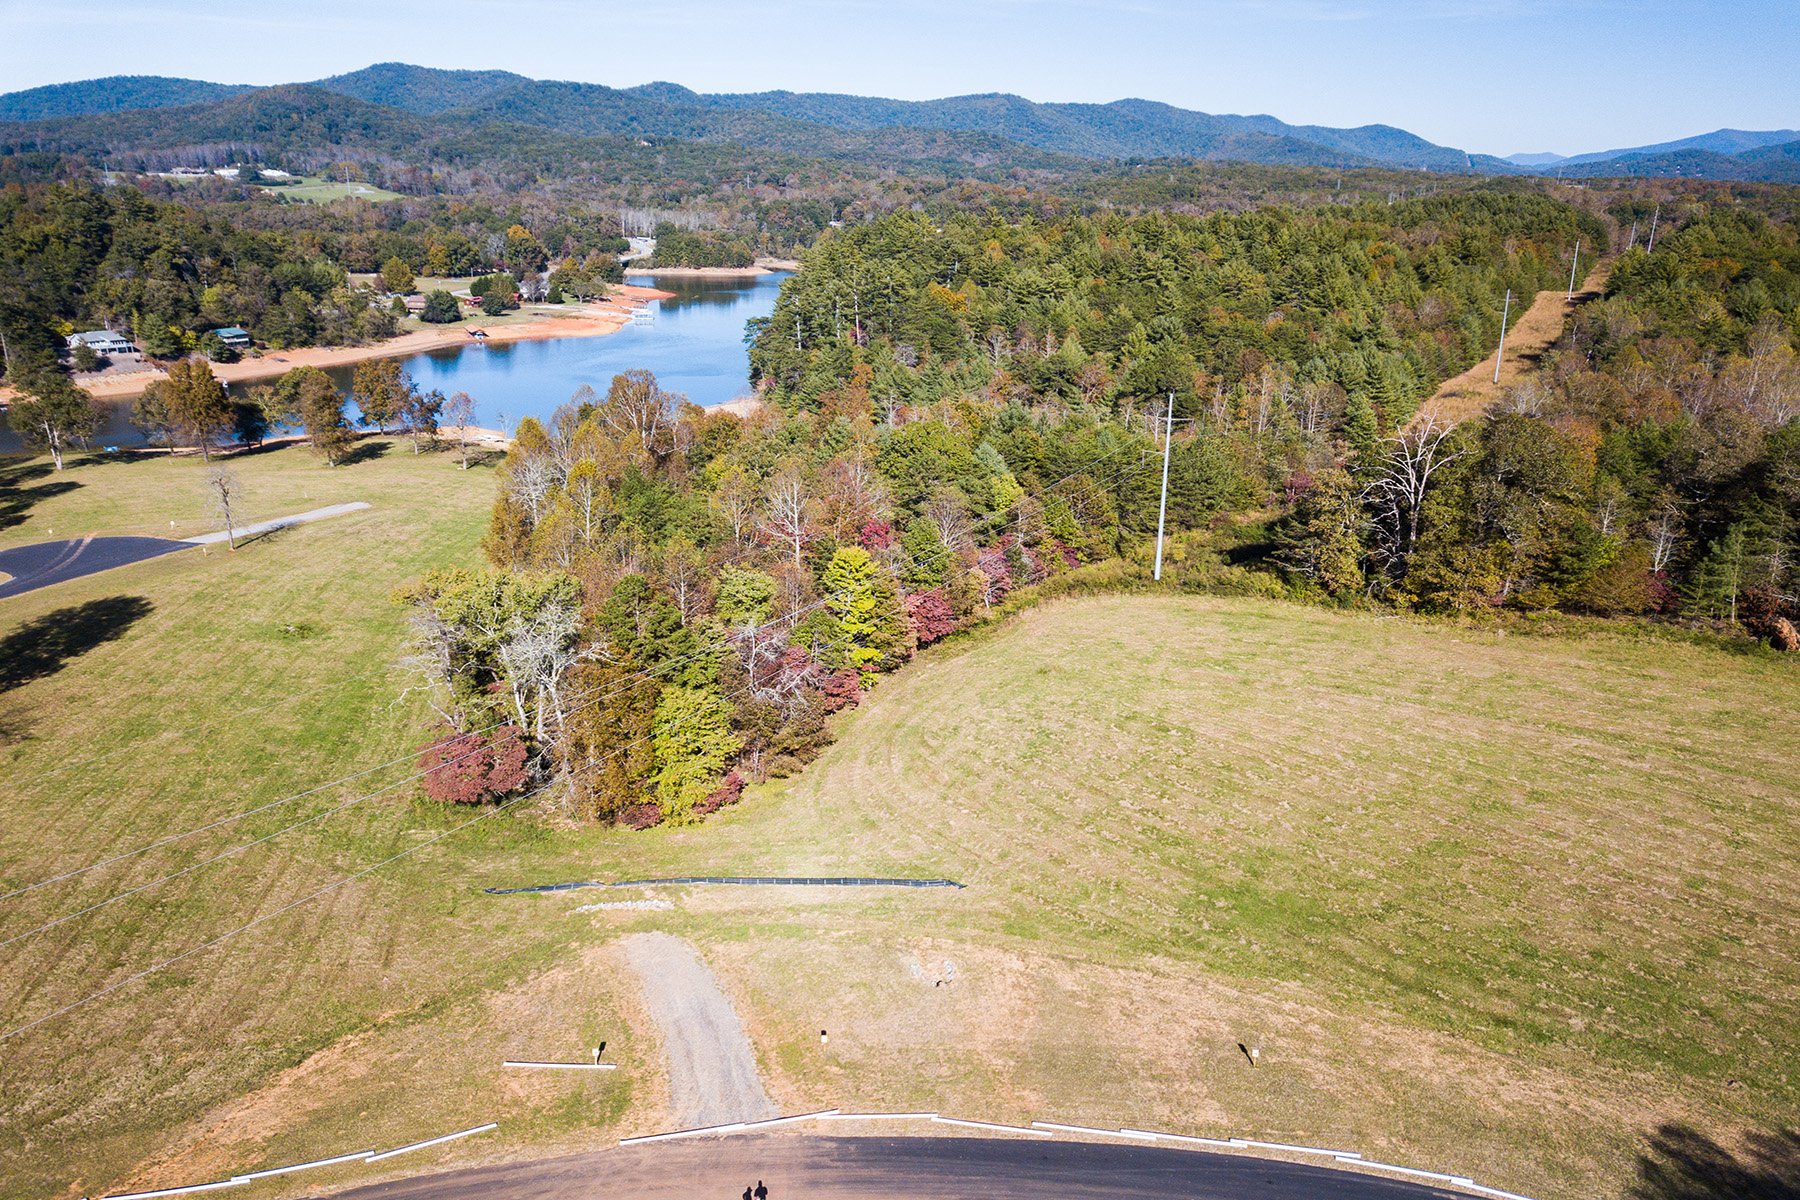 Terreno por un Venta en Lake Nottely View Lot - Ready for Your Masterpiece Lot 27 The Grove, Blairsville, Georgia 30512 Estados Unidos